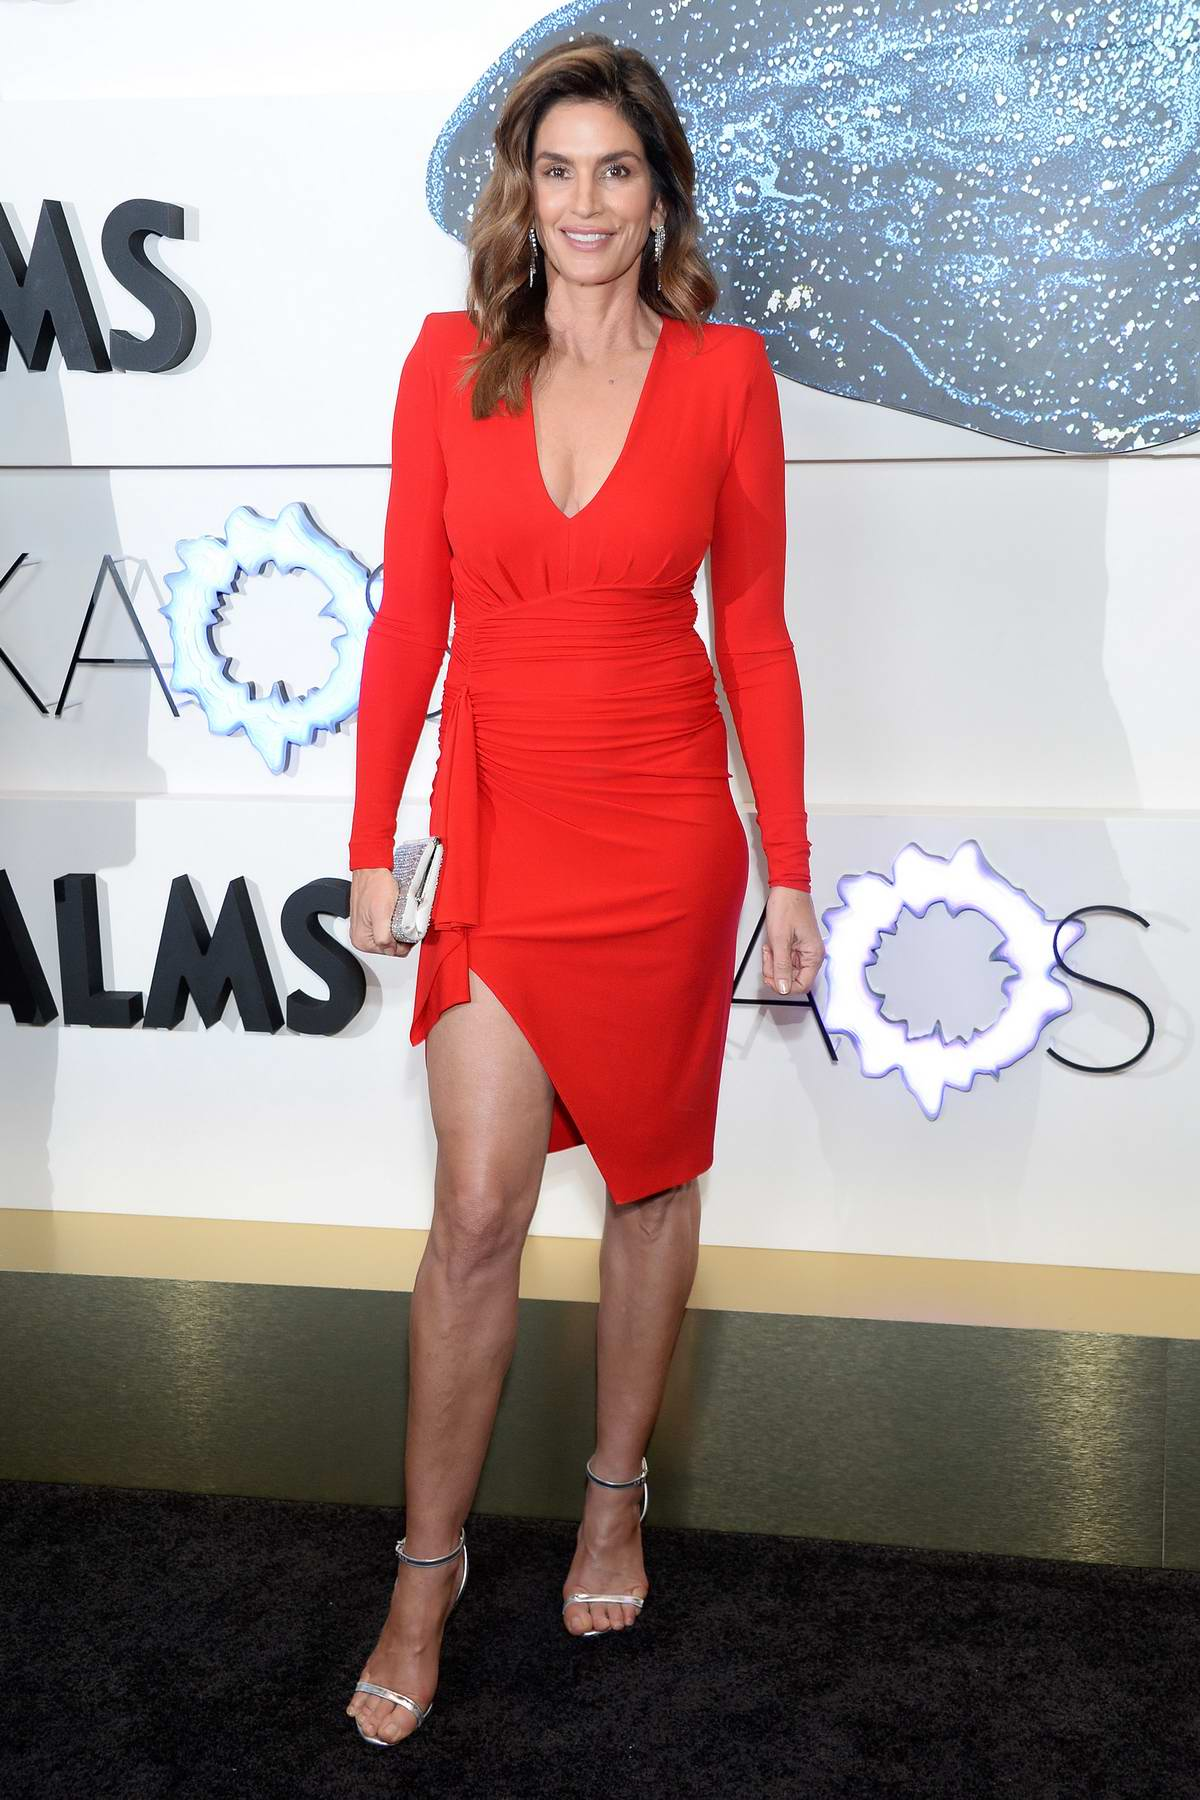 Cindy Crawford attends the KAOS Grand Opening at Palms Casino Resort in Las Vegas, Nevada